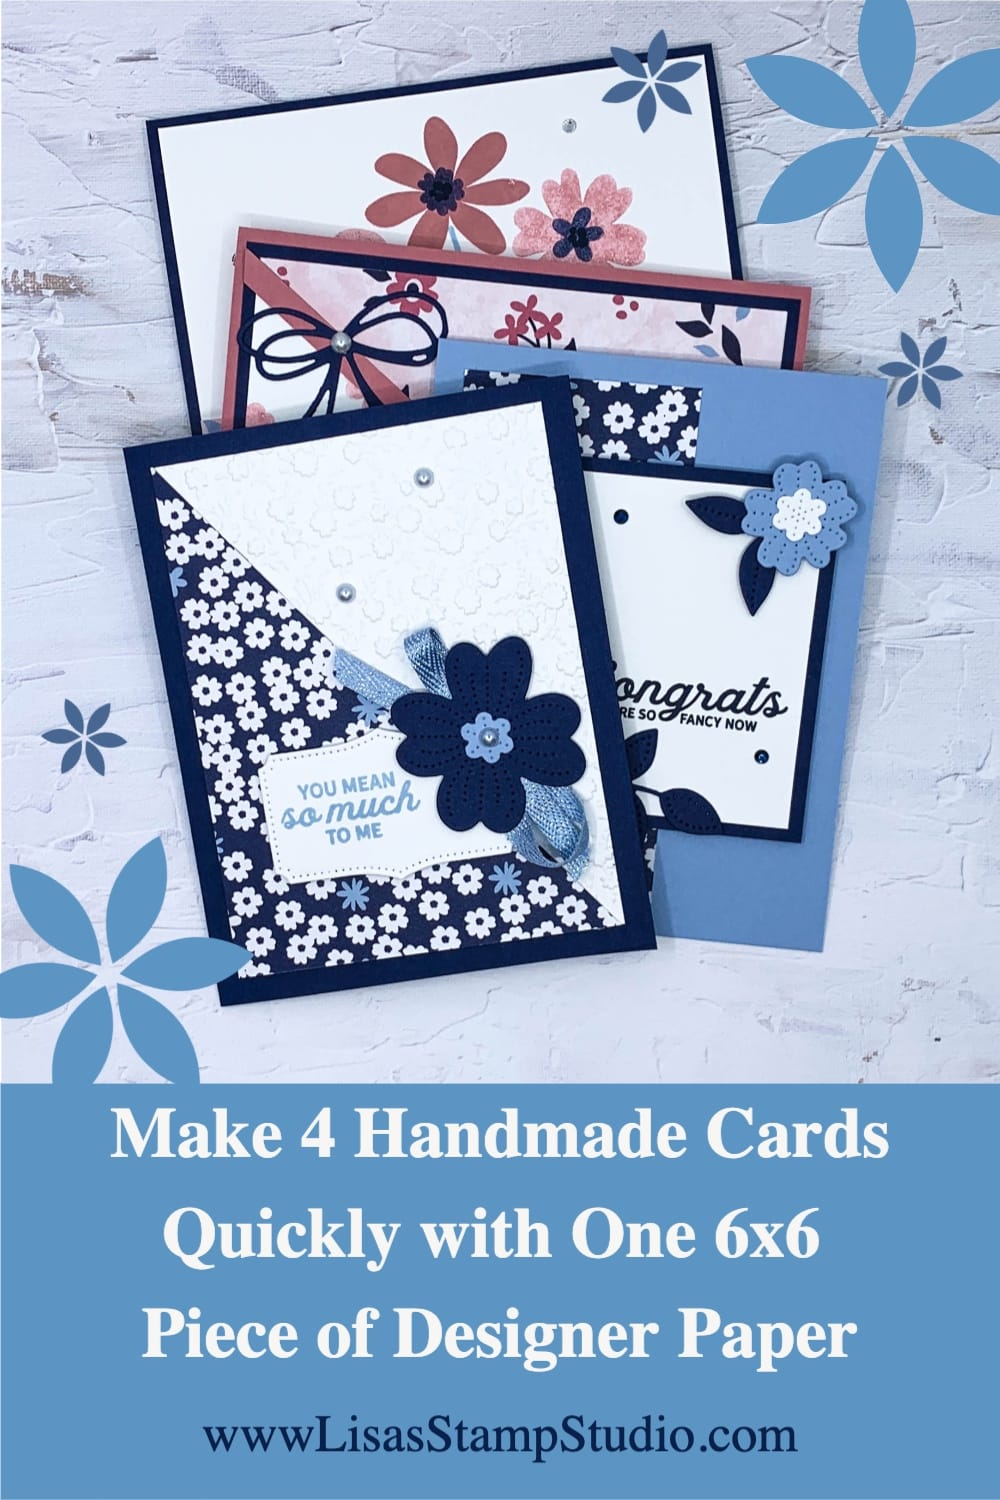 Make 4 handmade cards with one 6 by 6 piece of designer paper.